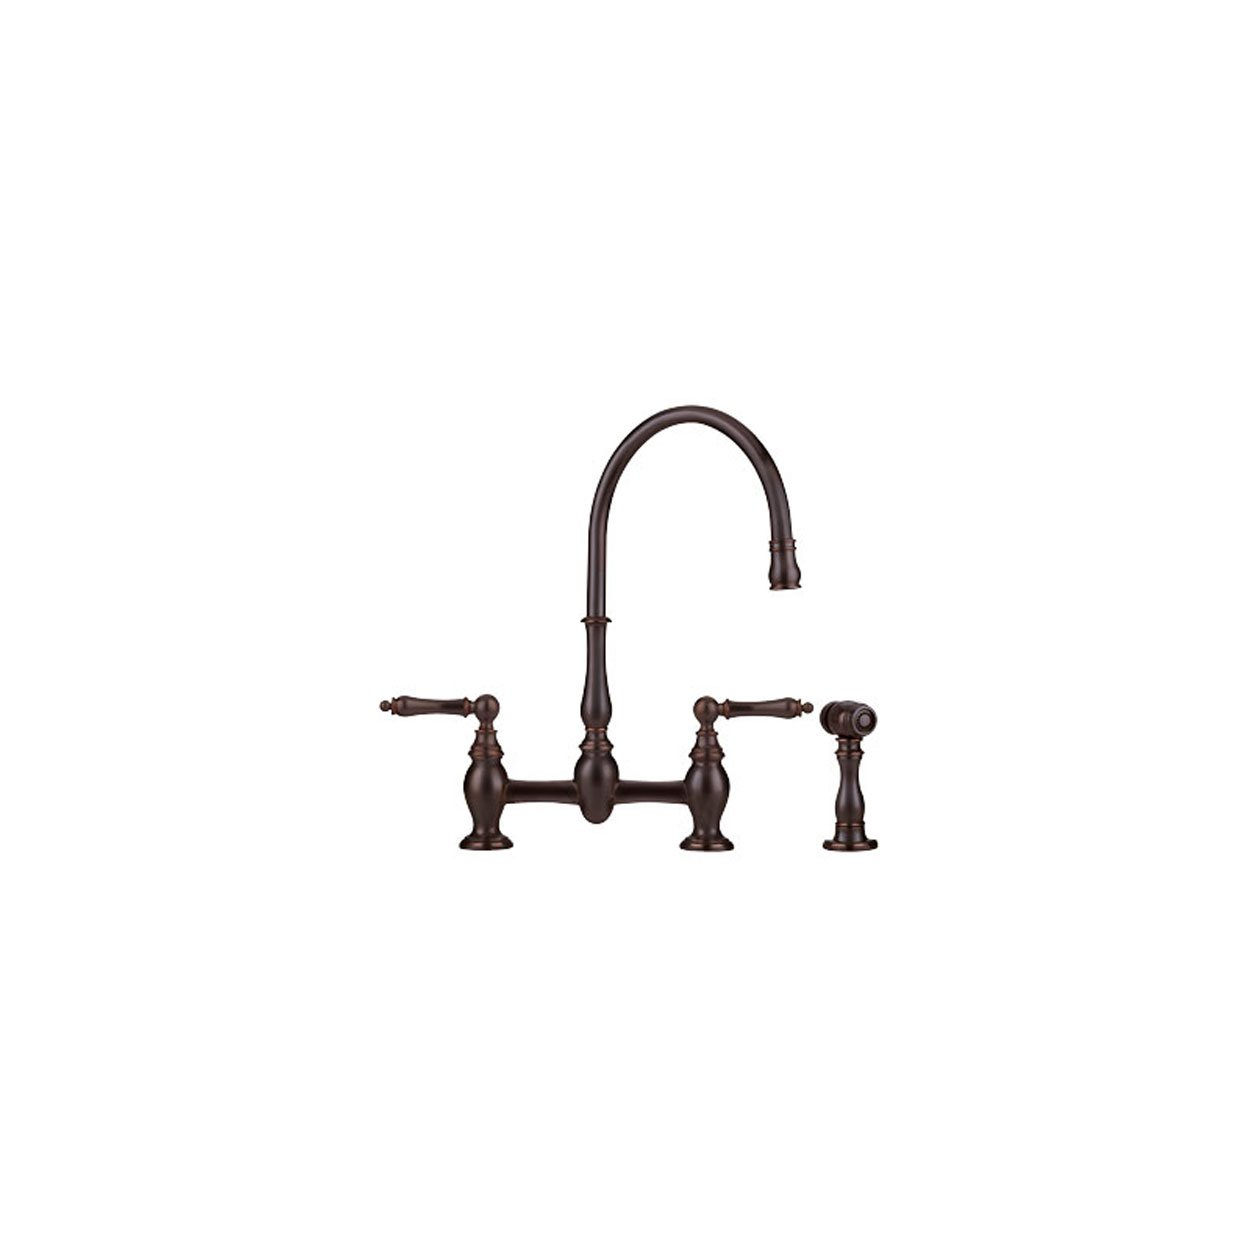 Franke FF6060a Two-Handle Bridge-Style Kitchen Faucet with Traditional Handles and Side Spray, Old World Bronze